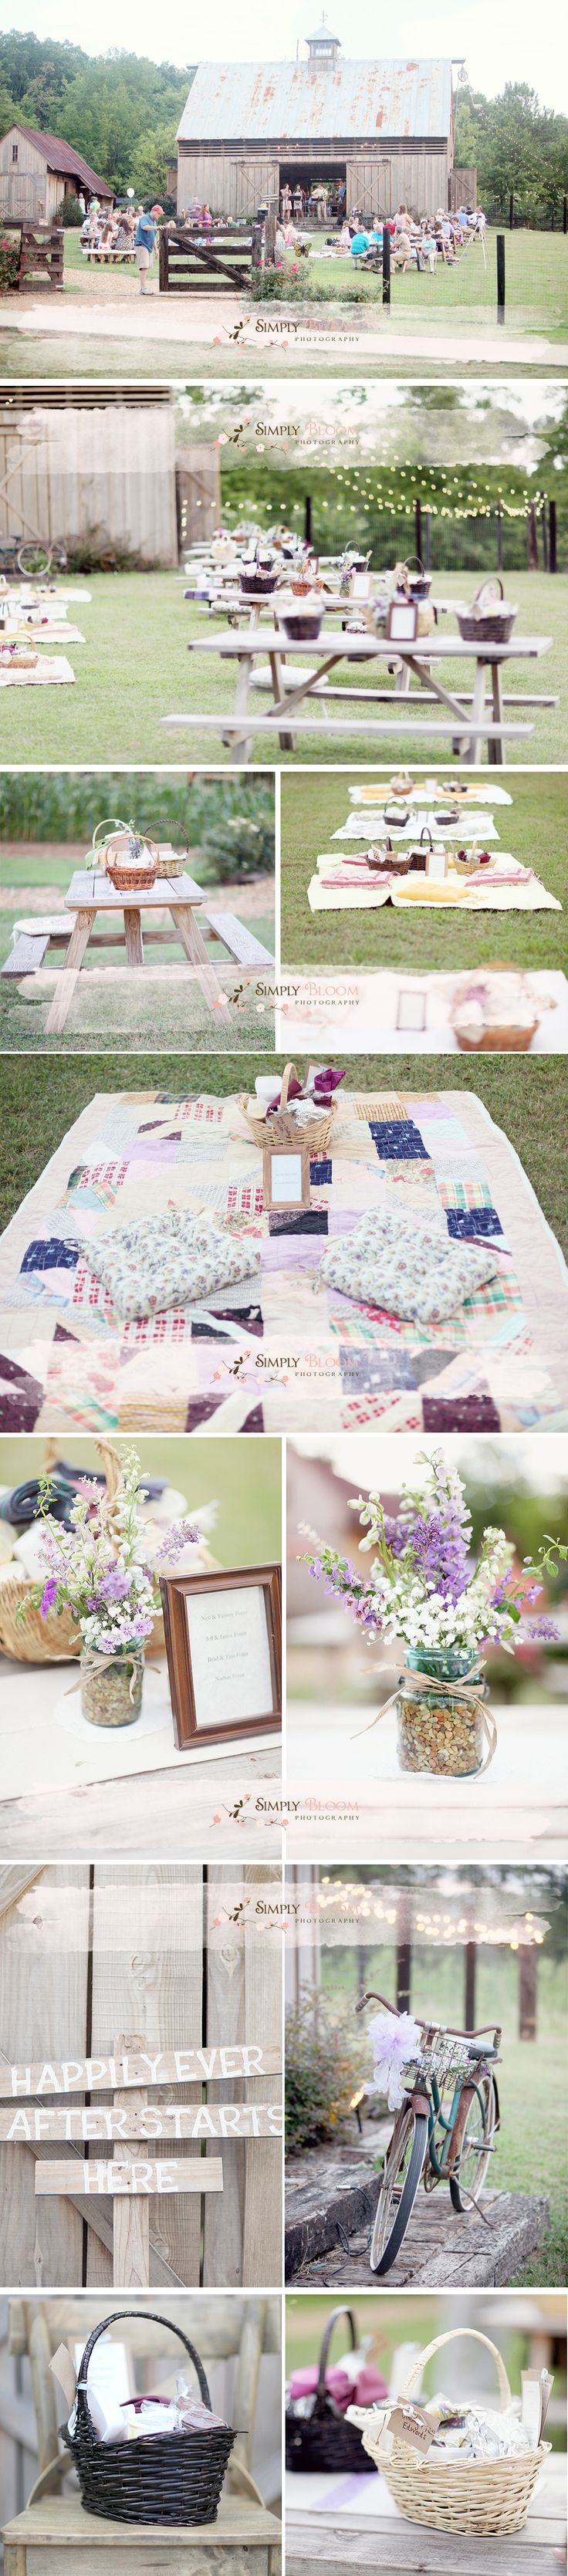 25 best picnic weddings ideas on pinterest picnic wedding receptions picn - Deco table romantique ...